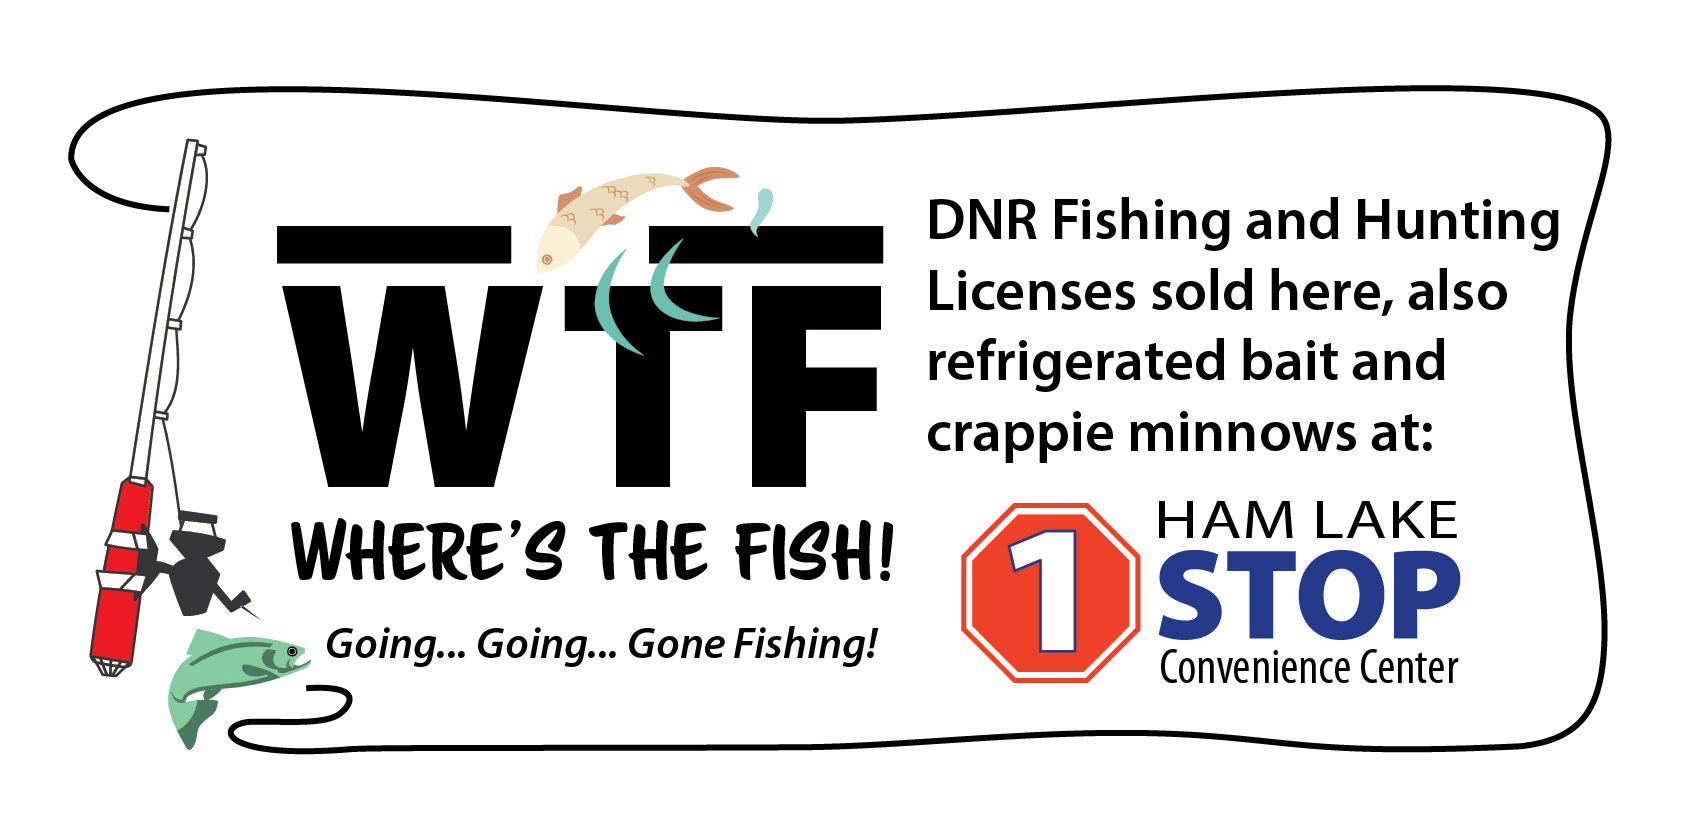 We sell DNR Fishing and Hunting Licenses and Bait too